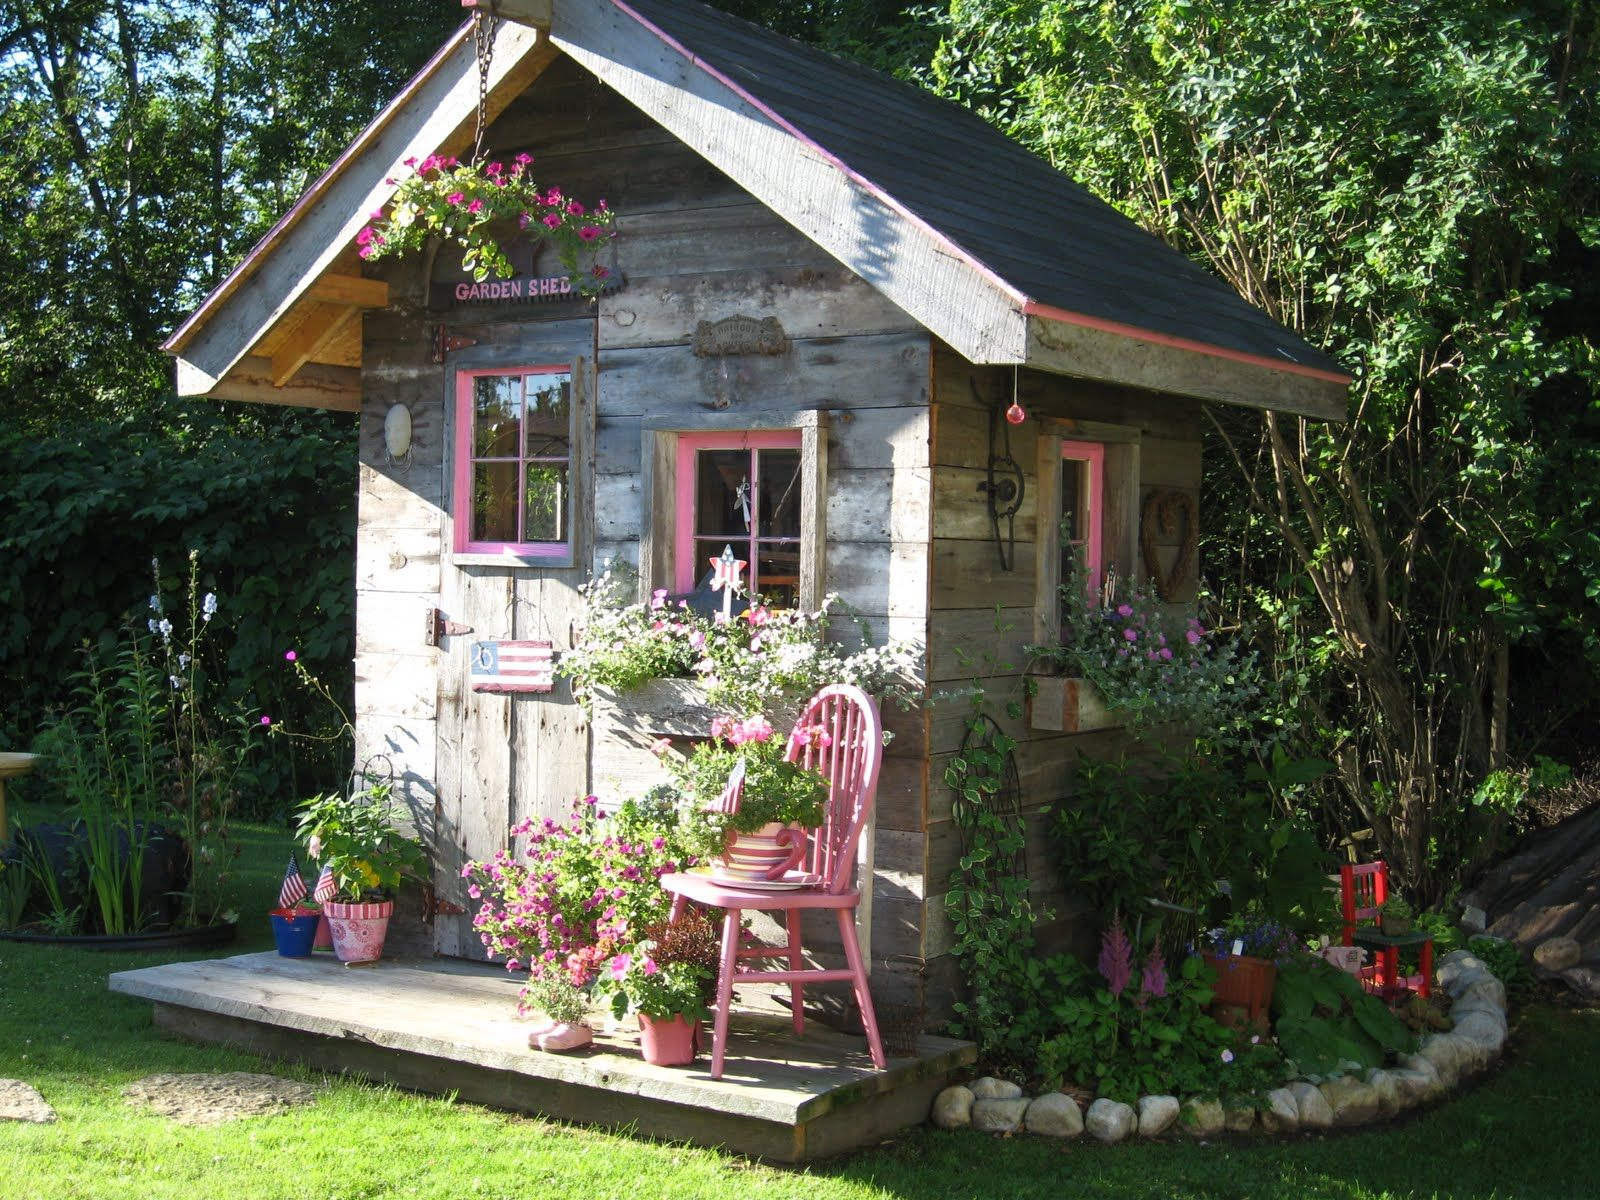 quaint garden shed in menominee michigan built by ken ceesay using recycled materials photo